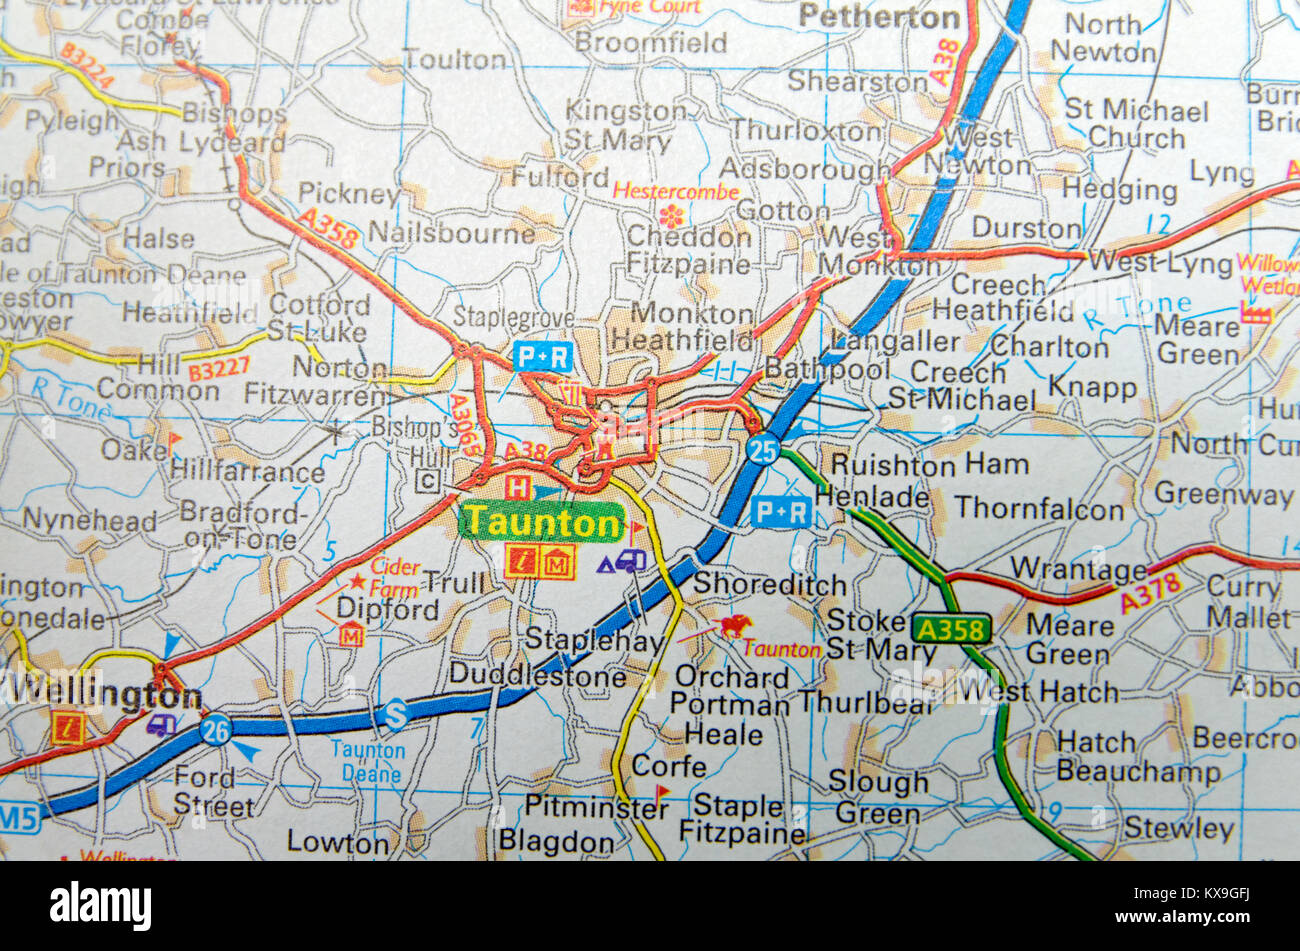 Map Of Taunton Road Map of Taunton, Somerset, England Stock Photo: 171084918   Alamy